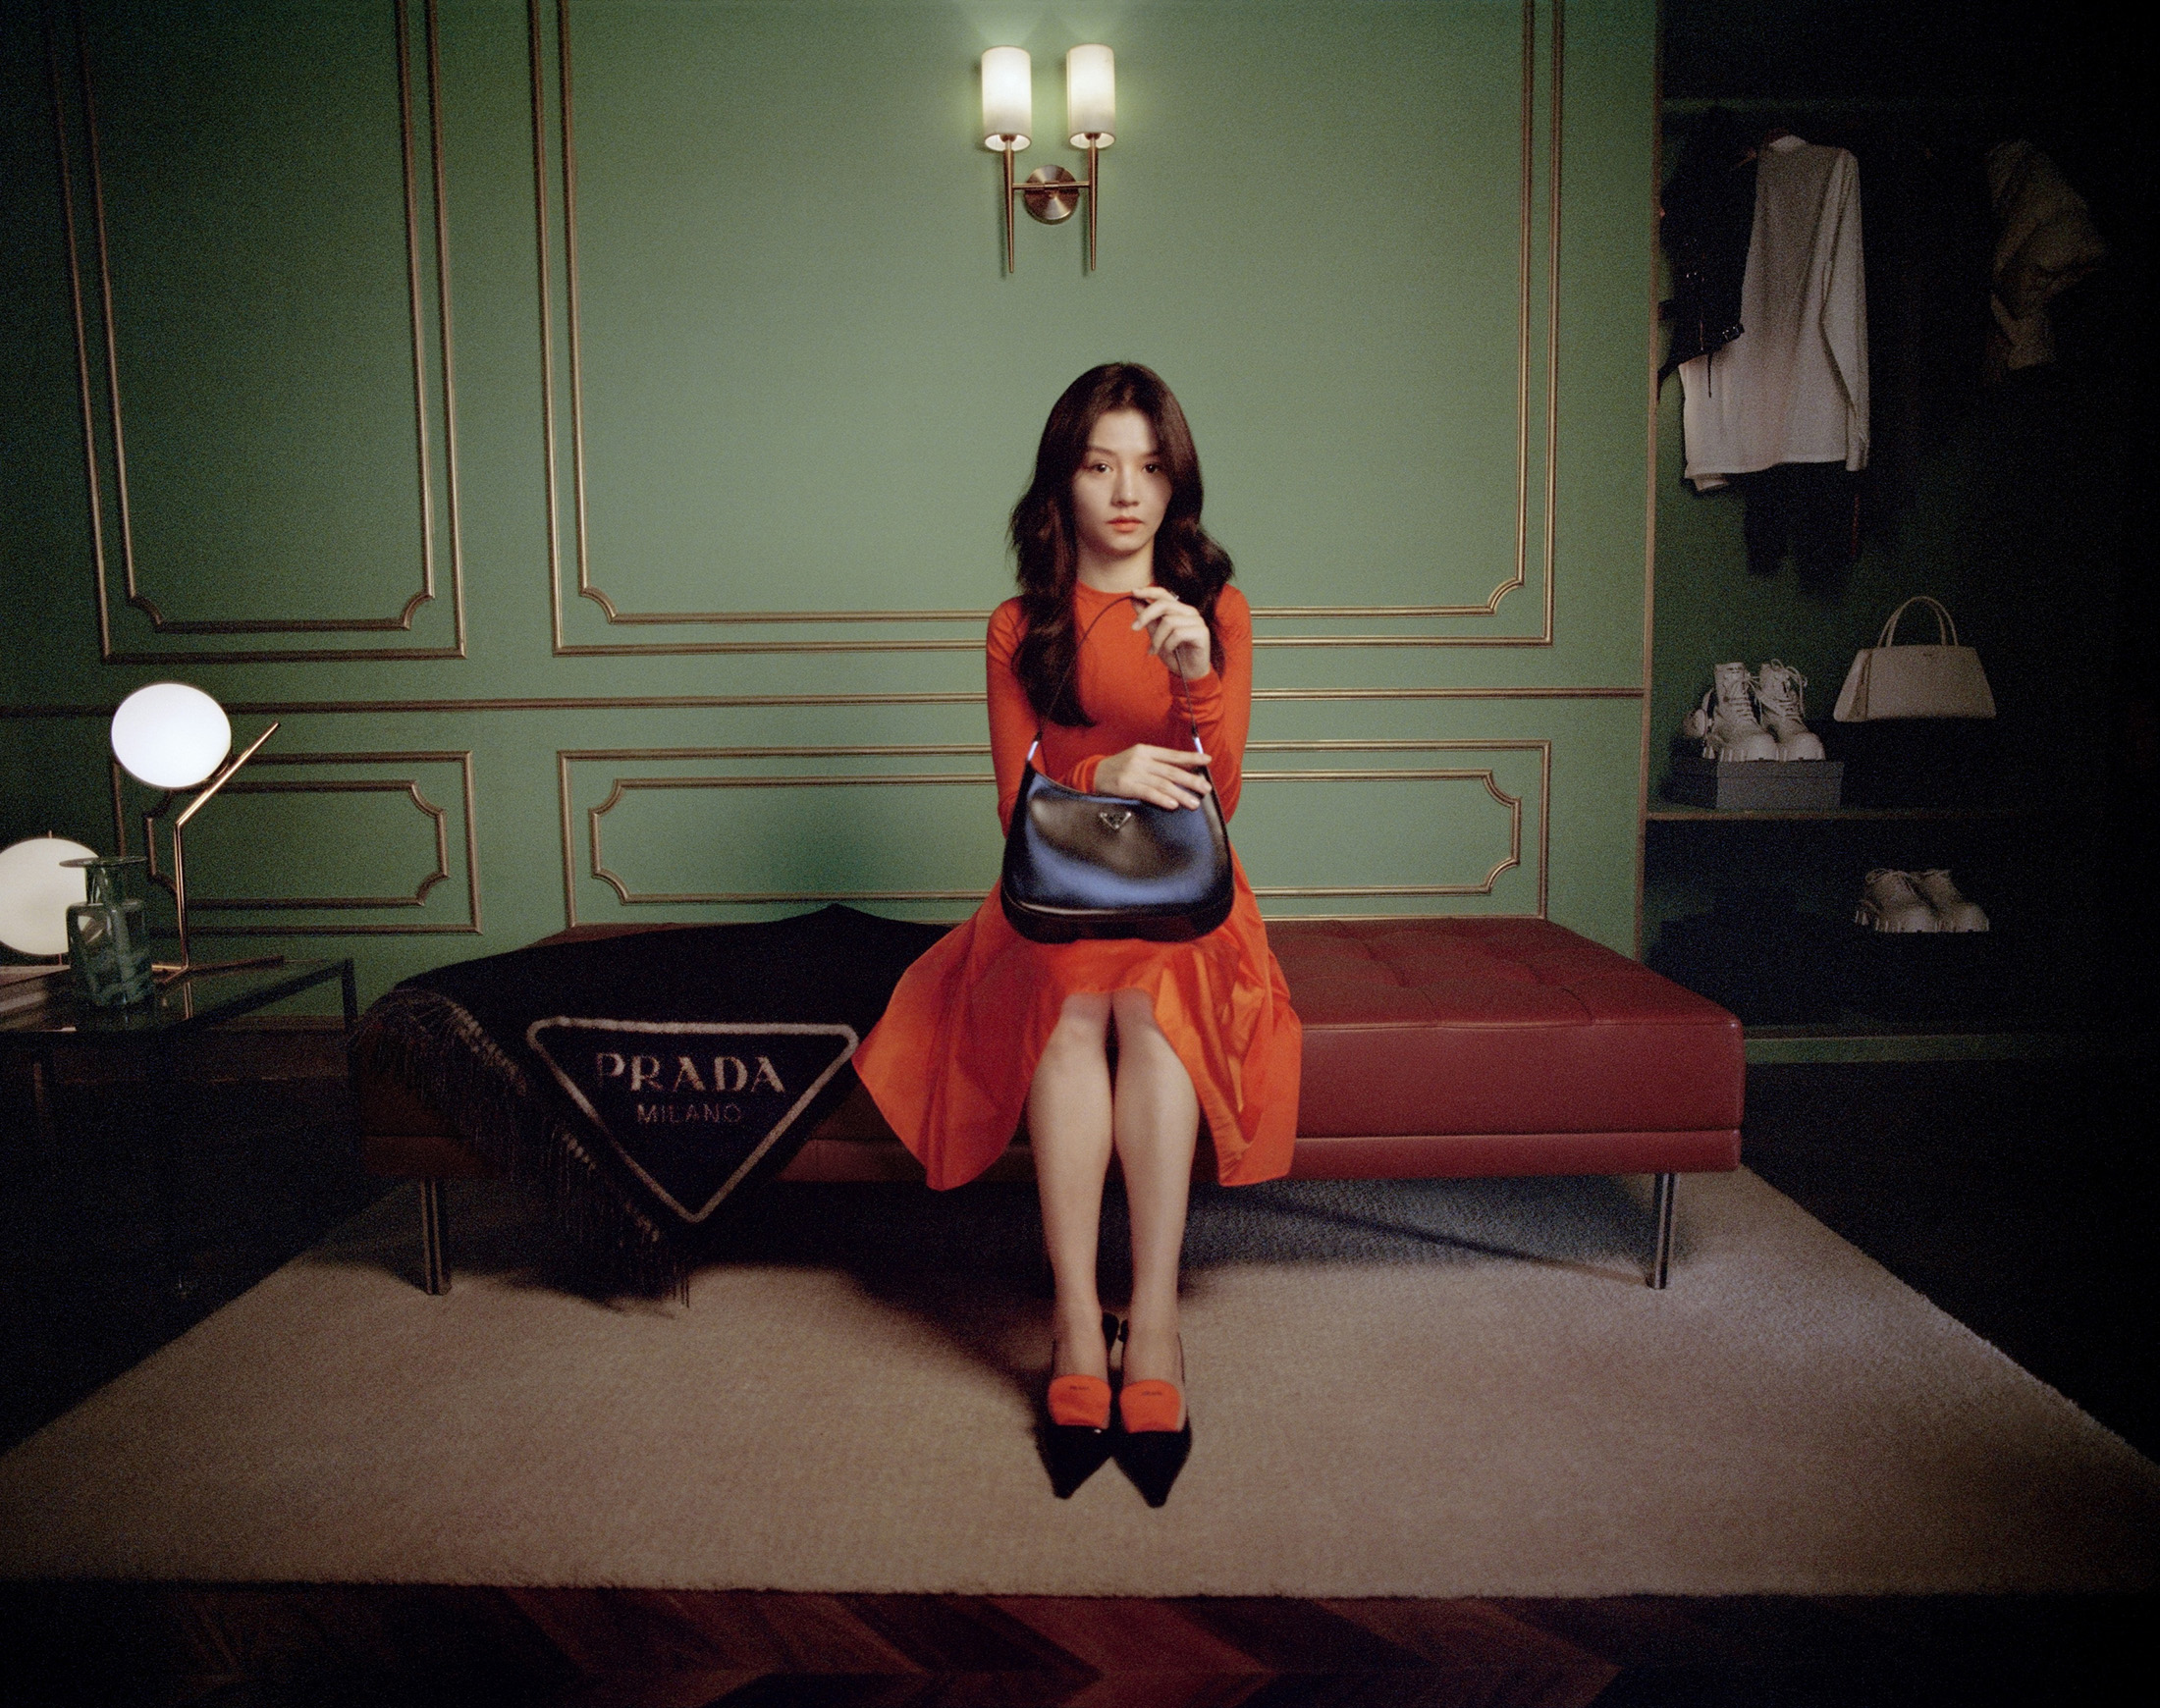 Prada Lunar New Year 2021 Ad Campaign Film & Photos